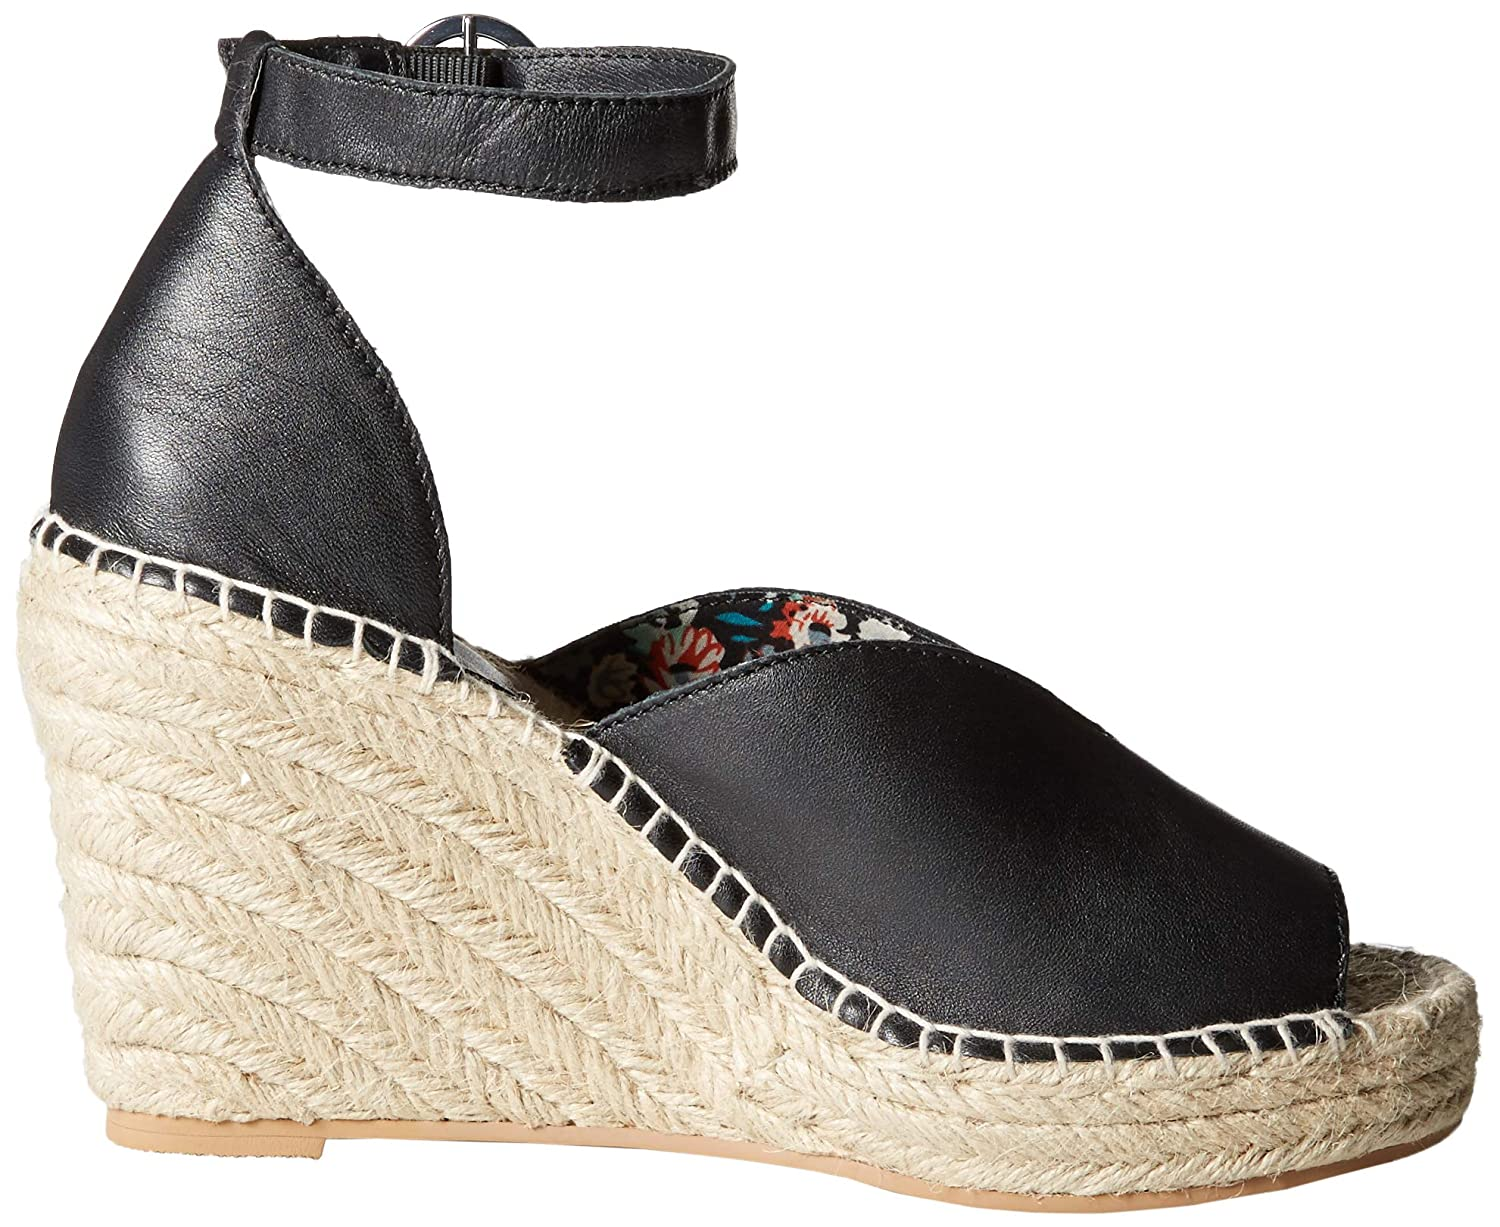 a4d44c59dd0 Amazon.com | Seychelles Women's Collectibles Espadrille Wedge Sandal ...